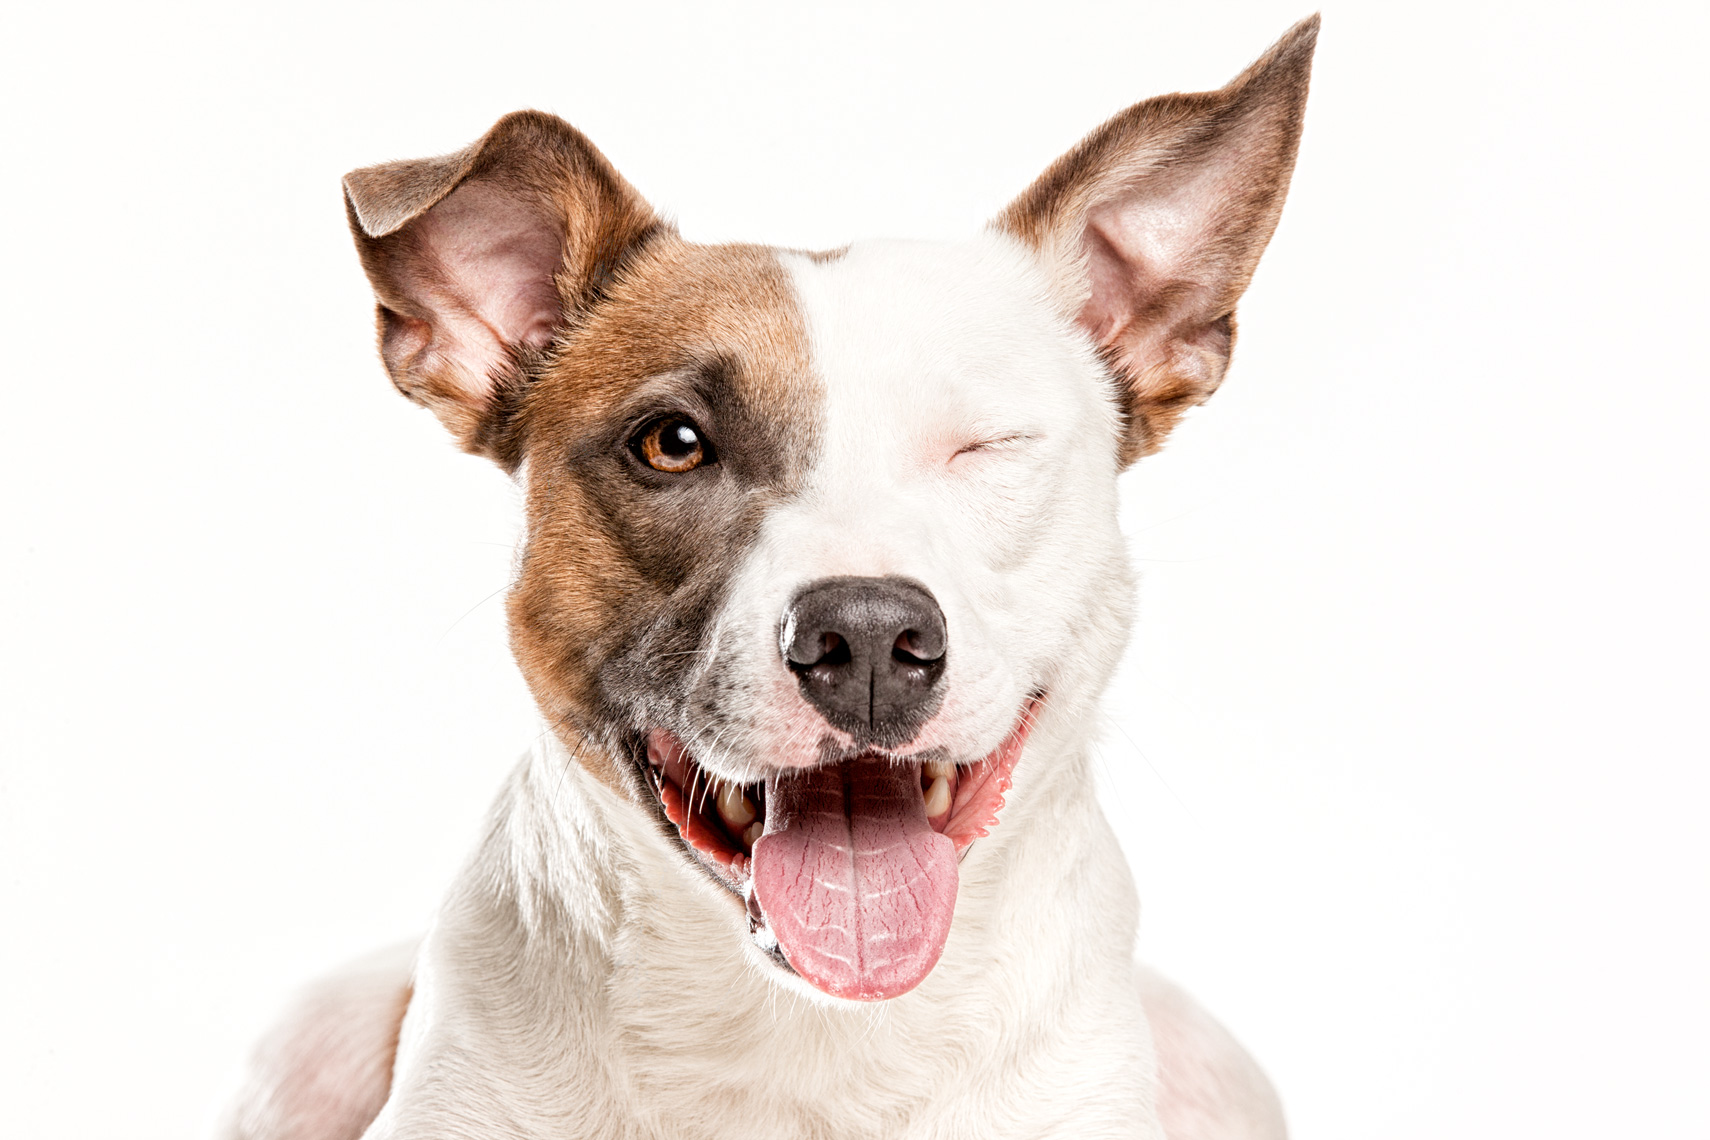 Los Angeles Dog Photography, Michael Brian, pet, cat, Pit Bull mix winking,  Studio headshot portrait